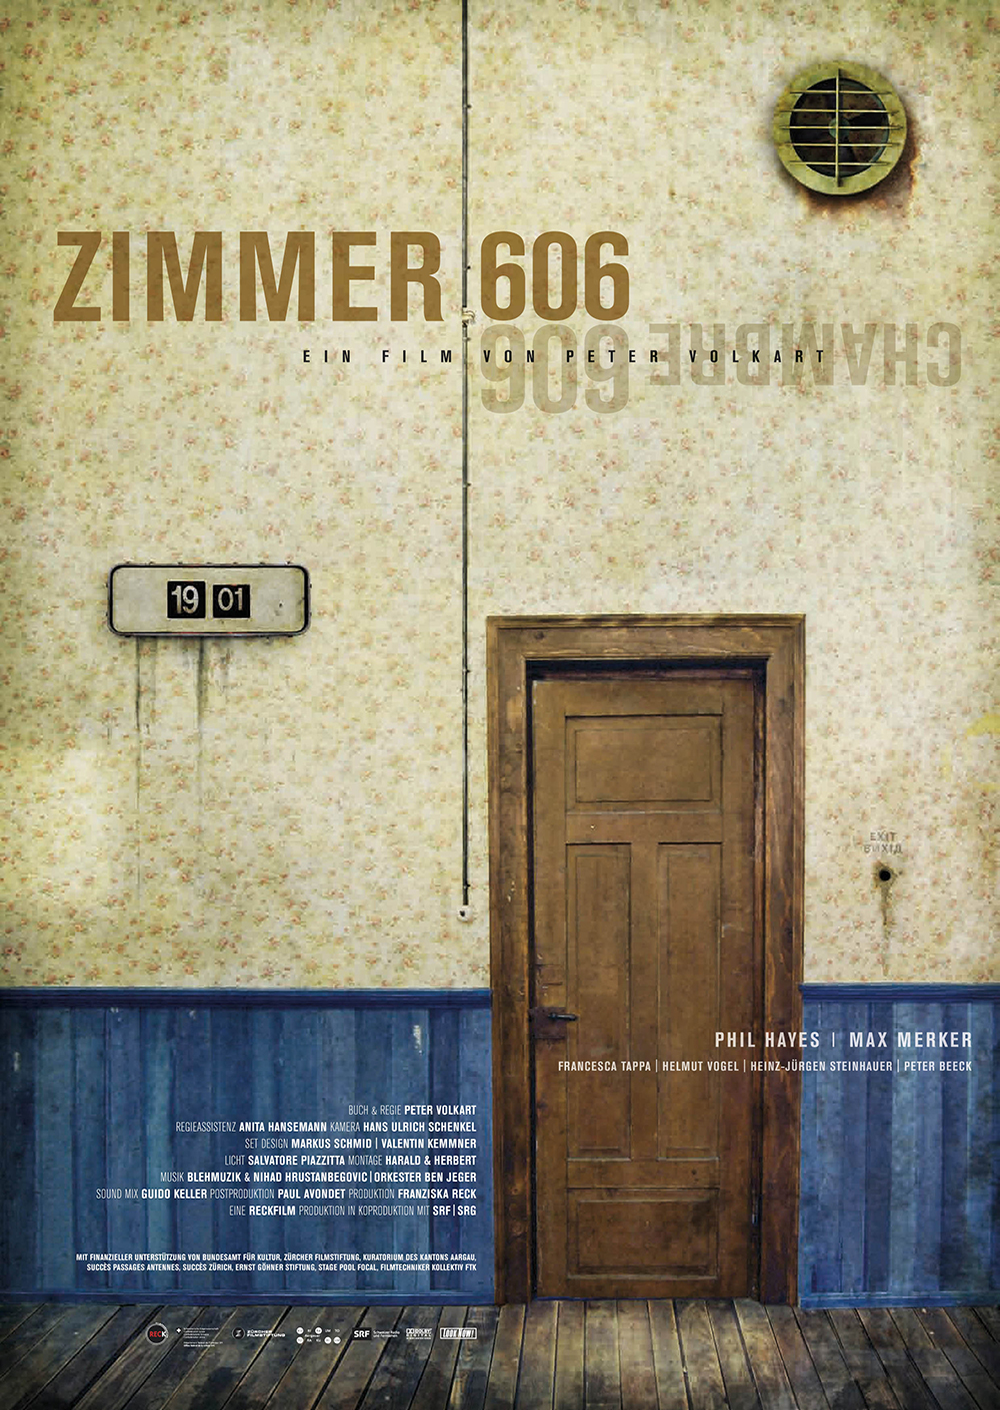 zimmer_606.png